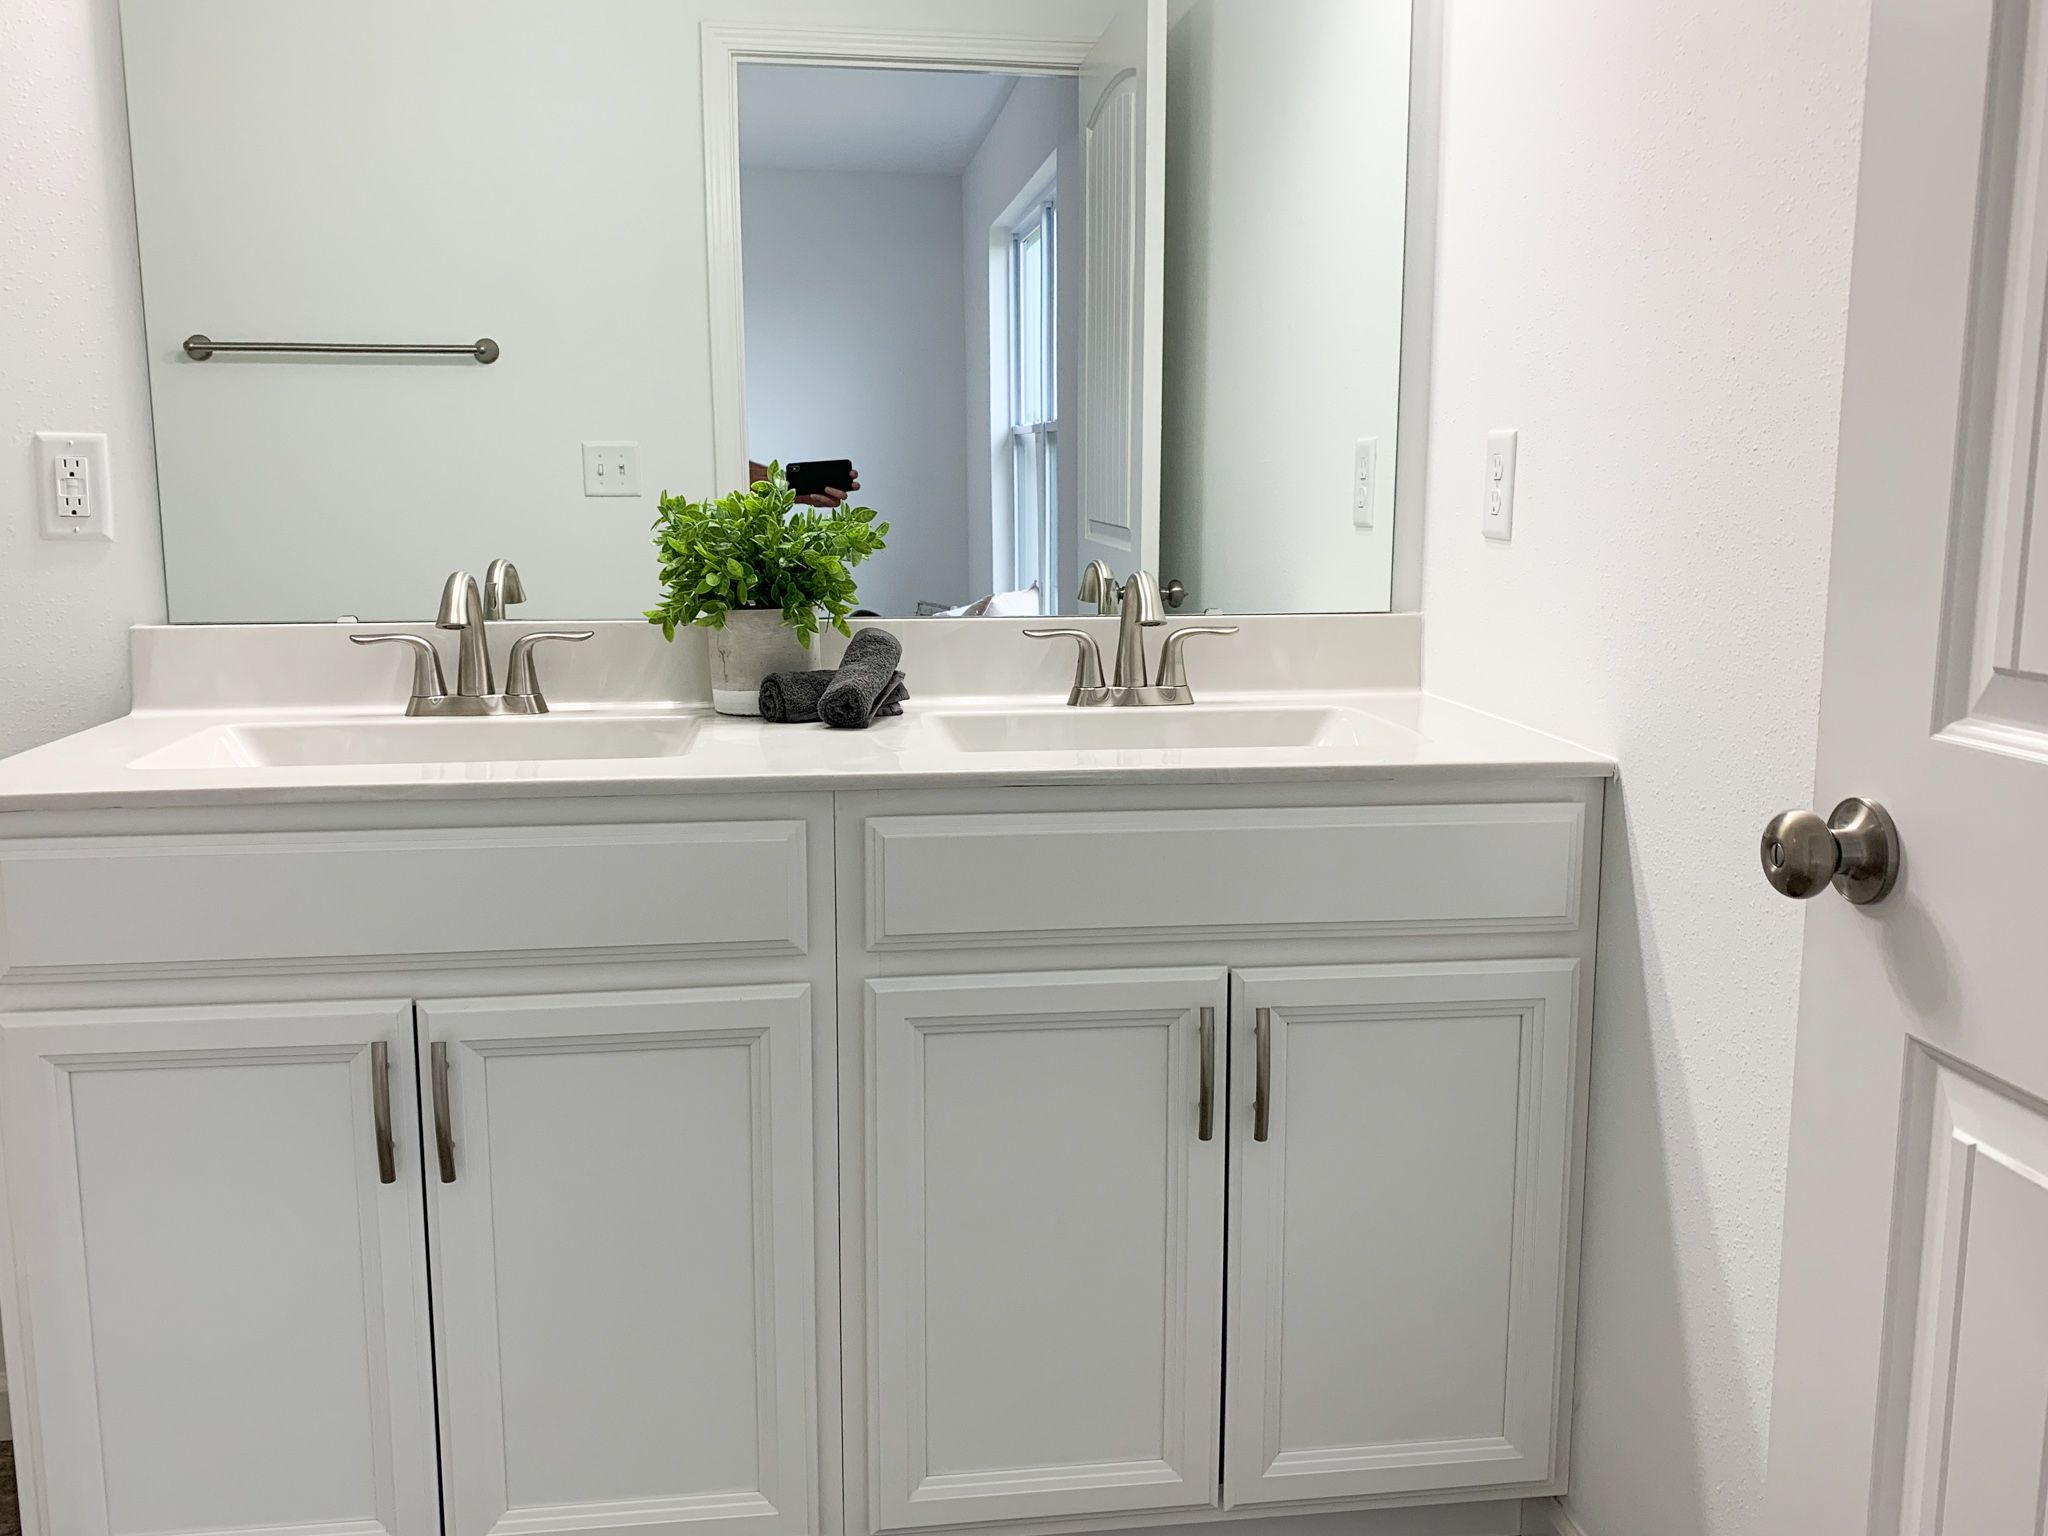 Bathroom featured in the Alexandria By C.A. Jones, Inc.  in St. Louis, IL